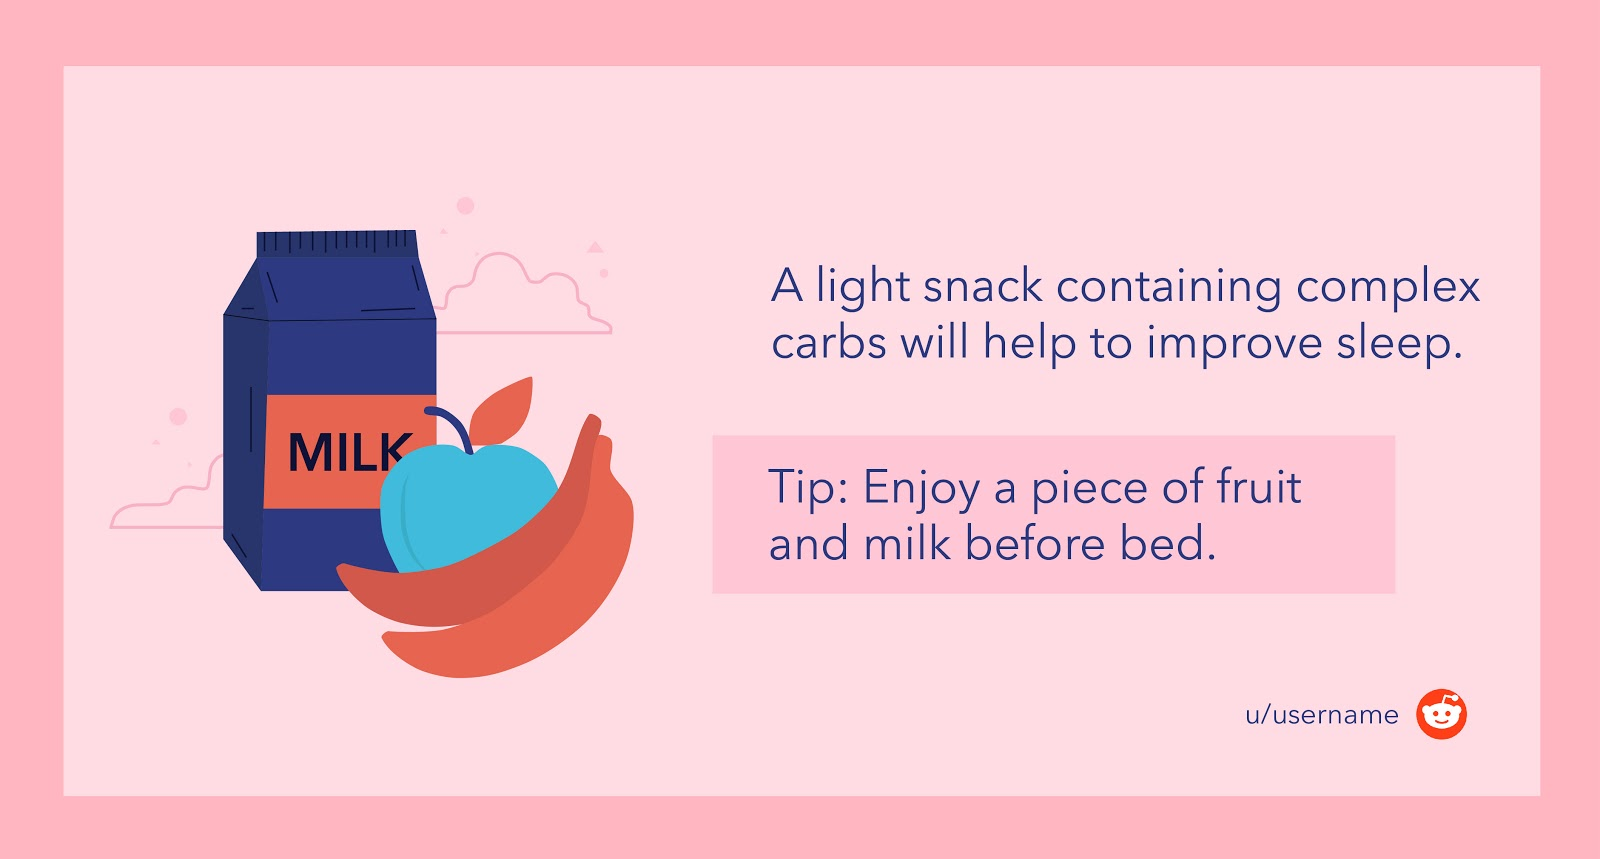 Enjoy a piece of fruit and milk before bed.